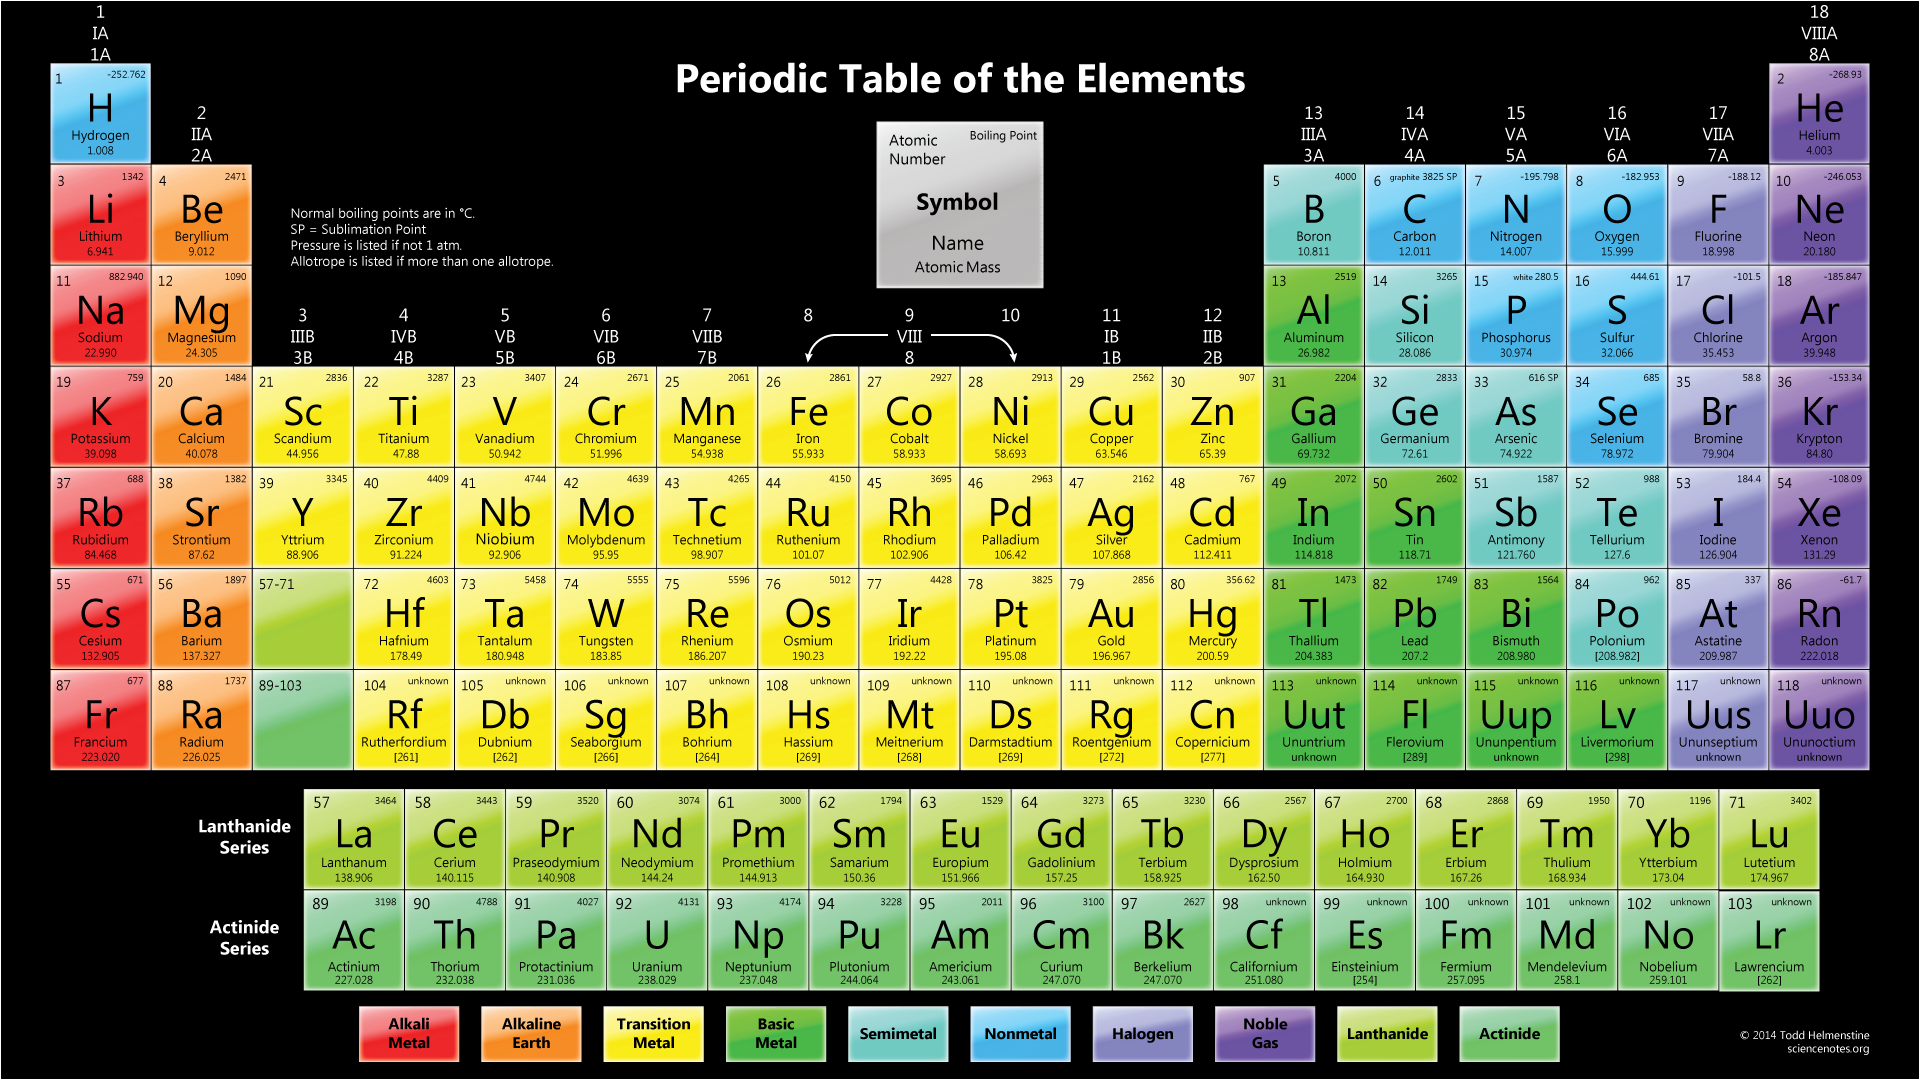 a study on the chemical element rhodium